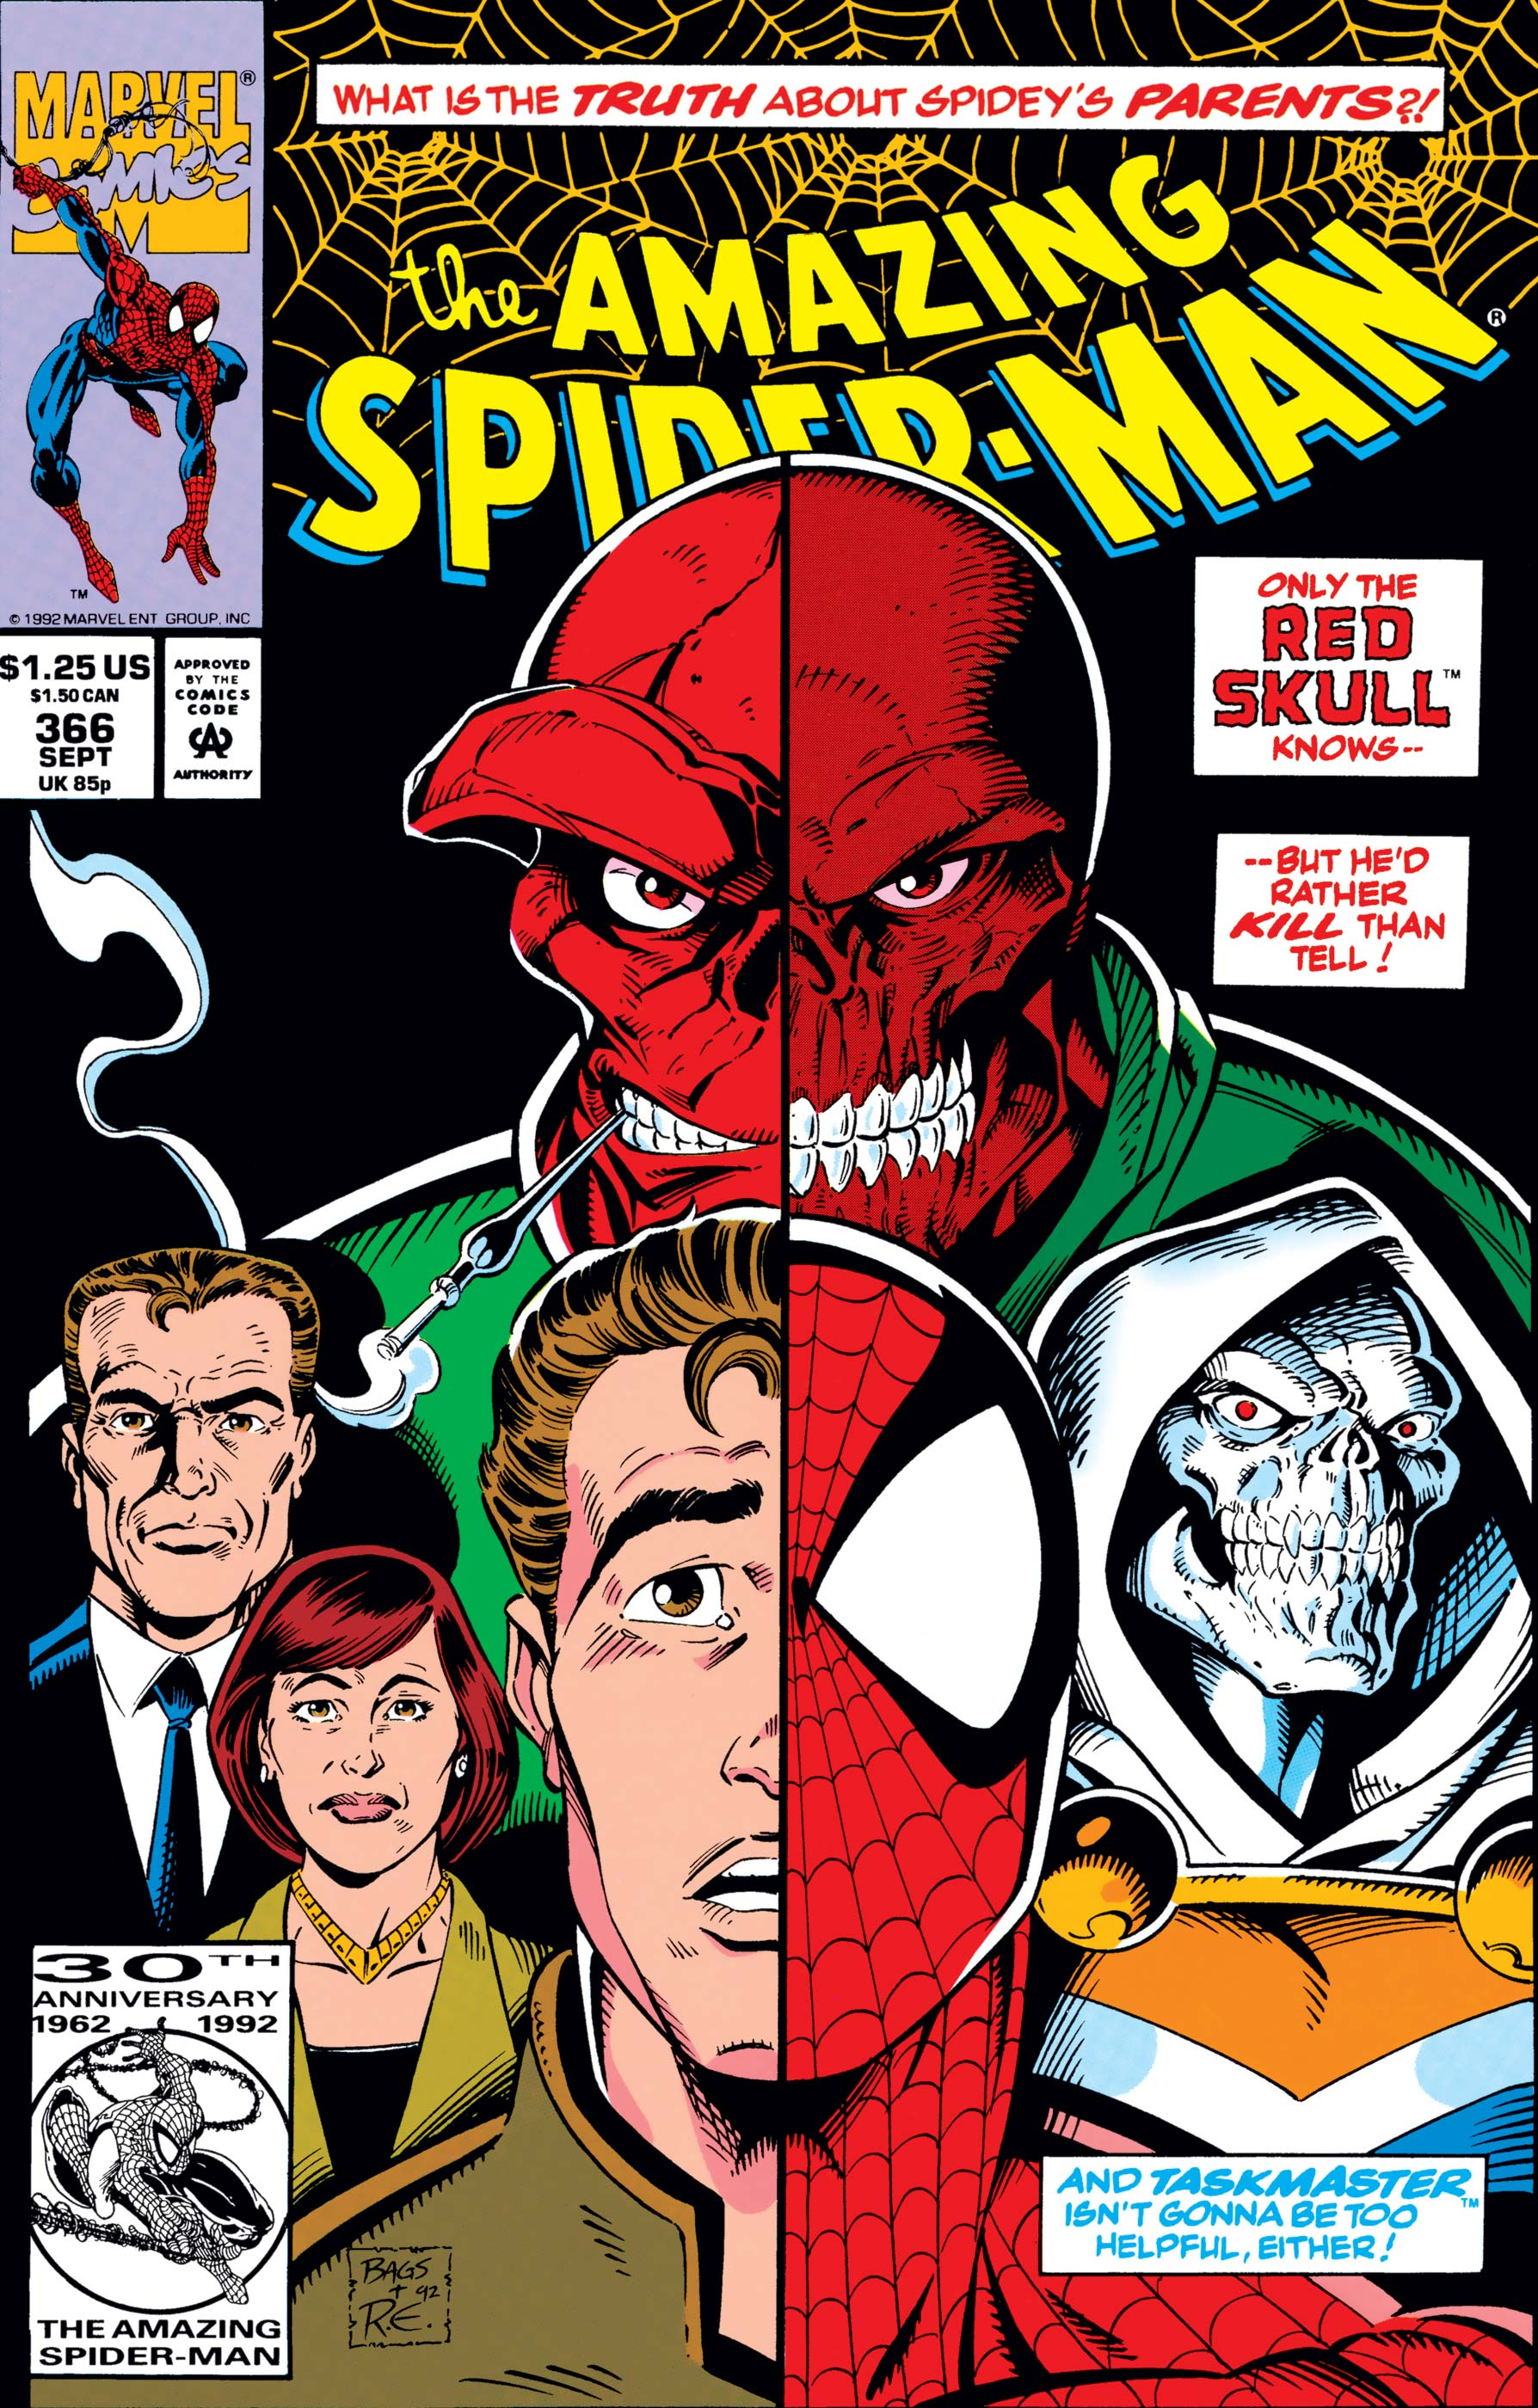 The Amazing Spider-Man (1963) #366